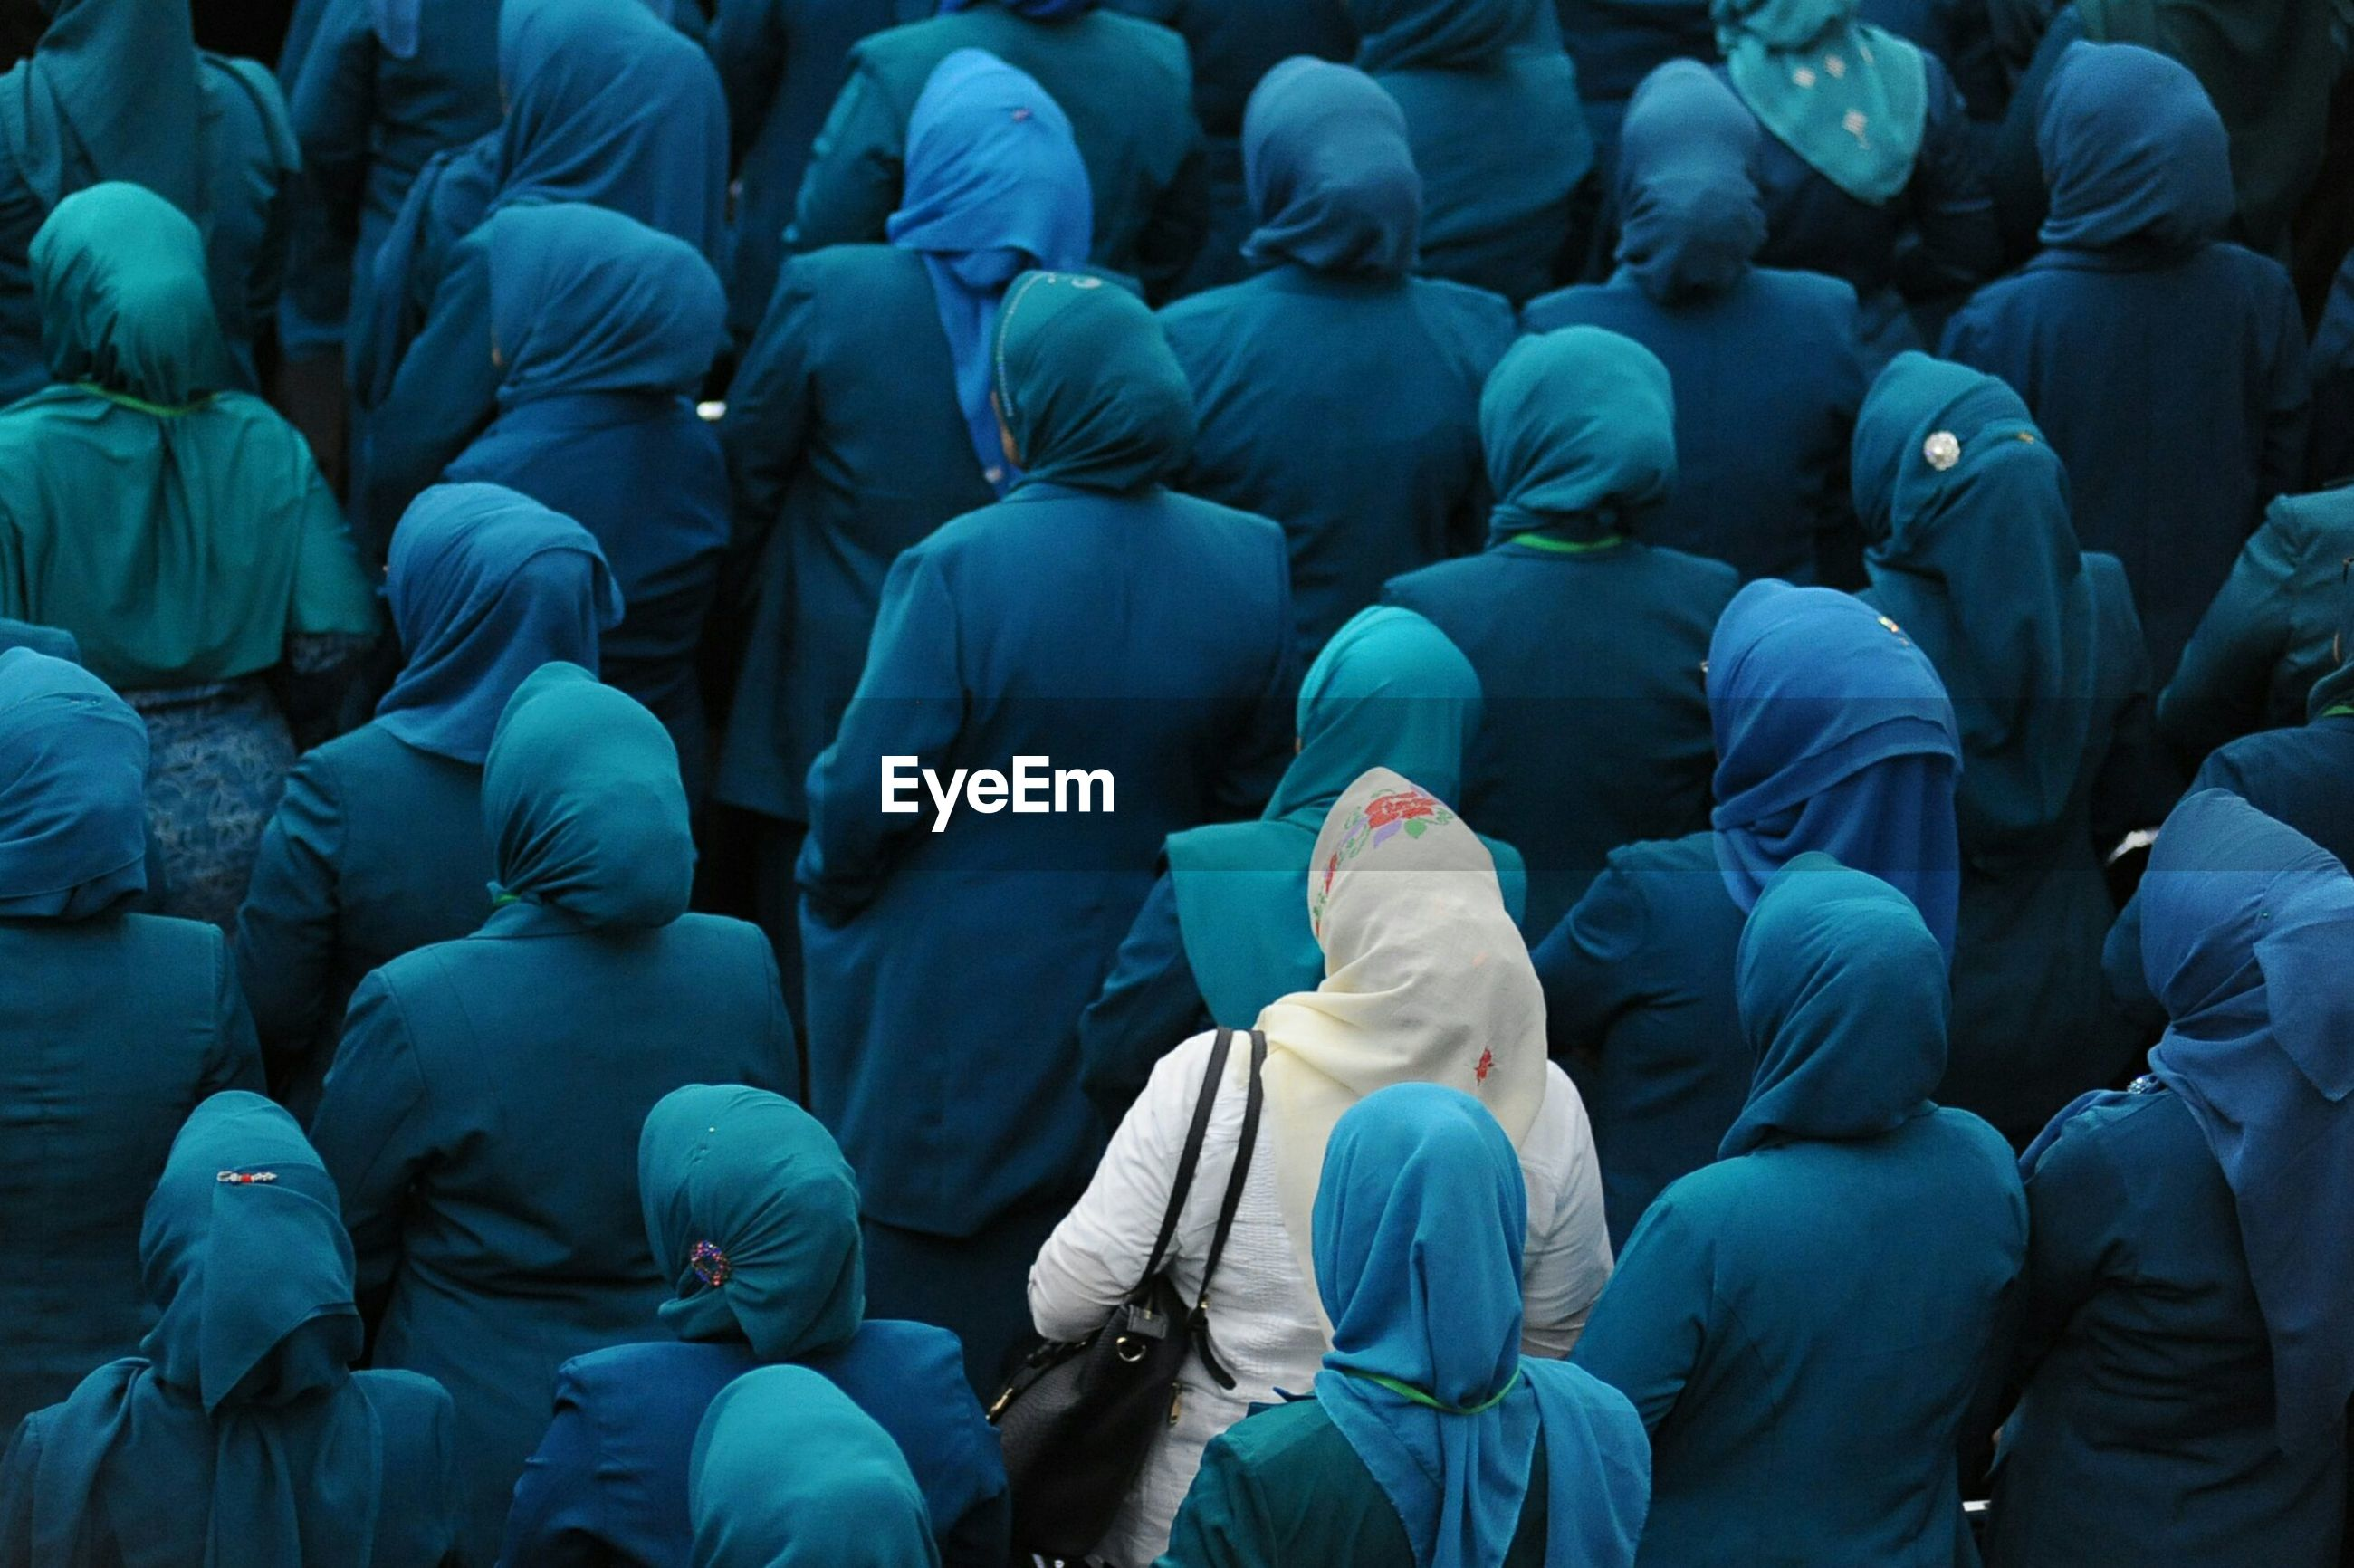 Full frame shot of women wearing hijabs